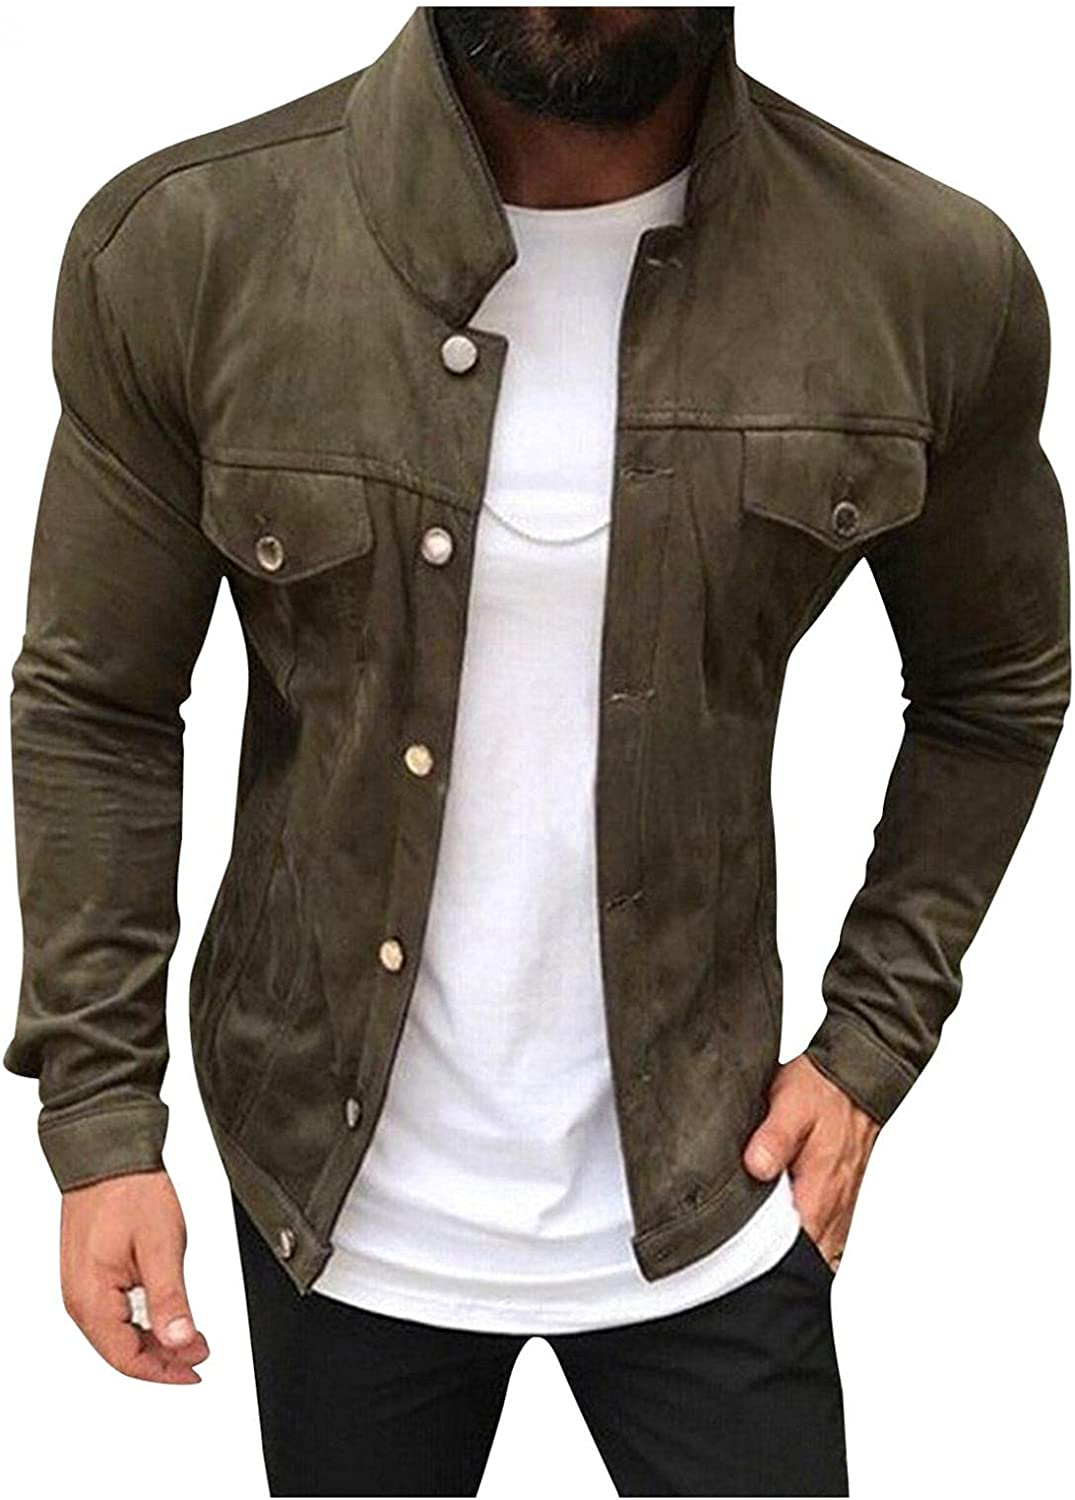 LEIYAN Mens Cargo Military Jackets Long Sleeve Slim Fit Lapel Collar Button Down Cotton Bomber Motorcycle Jacket